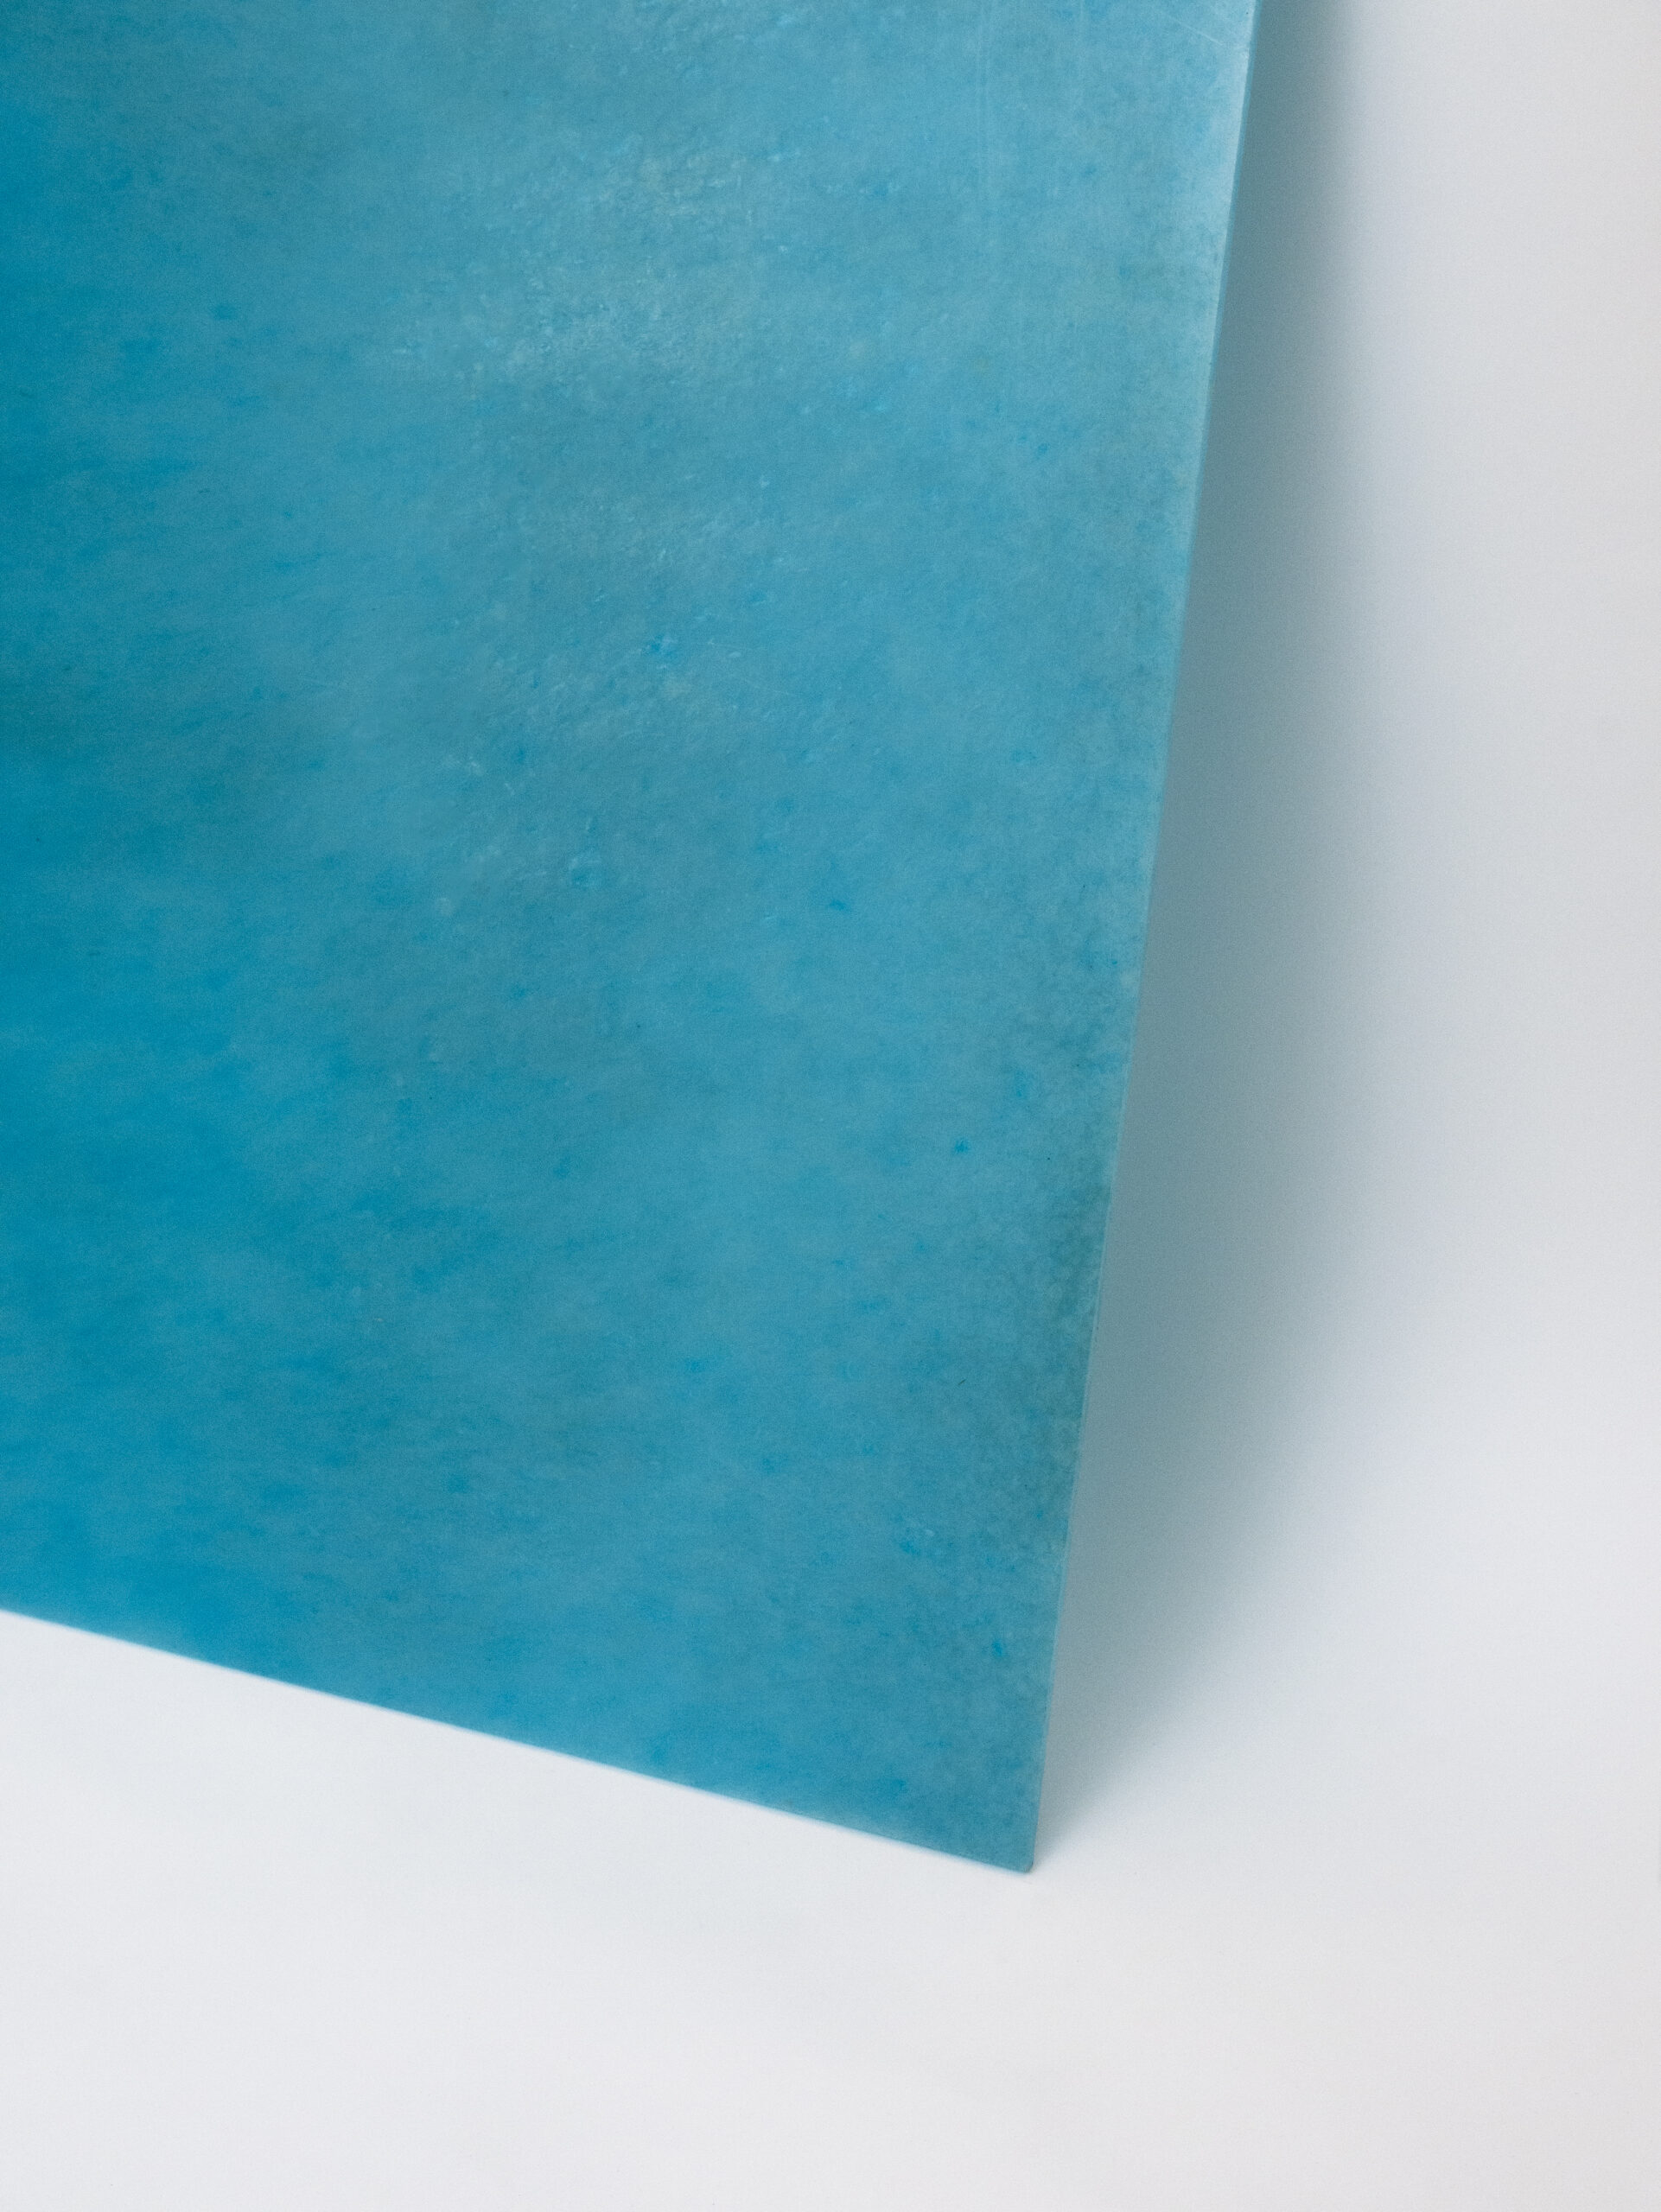 Maldives Recycled Plastic Sheets - Environmentally friendly recycled plastic sheets. High quality panels with the lowest ecological footprint possible. Each panel is made from a single type of plastic so it can be easily recycled, extending its use indefinitely.  The sheets can be used to create modern-looking environmentally-conscious furniture and interior or exterior design elements.  Lagoon-blue and as translucent as ocean water… this pattern awakens the ultimate holiday vibe and adds a refreshing look to the surrounding interior. A definite tropical mood maker!  Origin: spools.  Waterproof and rot-proof. Chemical resistant. The material can be machined, drilled, cut (by CNC, woodworking sawblades, router and waterjet), sanded, heat formed, glued, and fixed with screws as well as adhesives.  Bespoke colours and patterns are available. Please see images for reference and enquire for more information. | Matter of Stuff